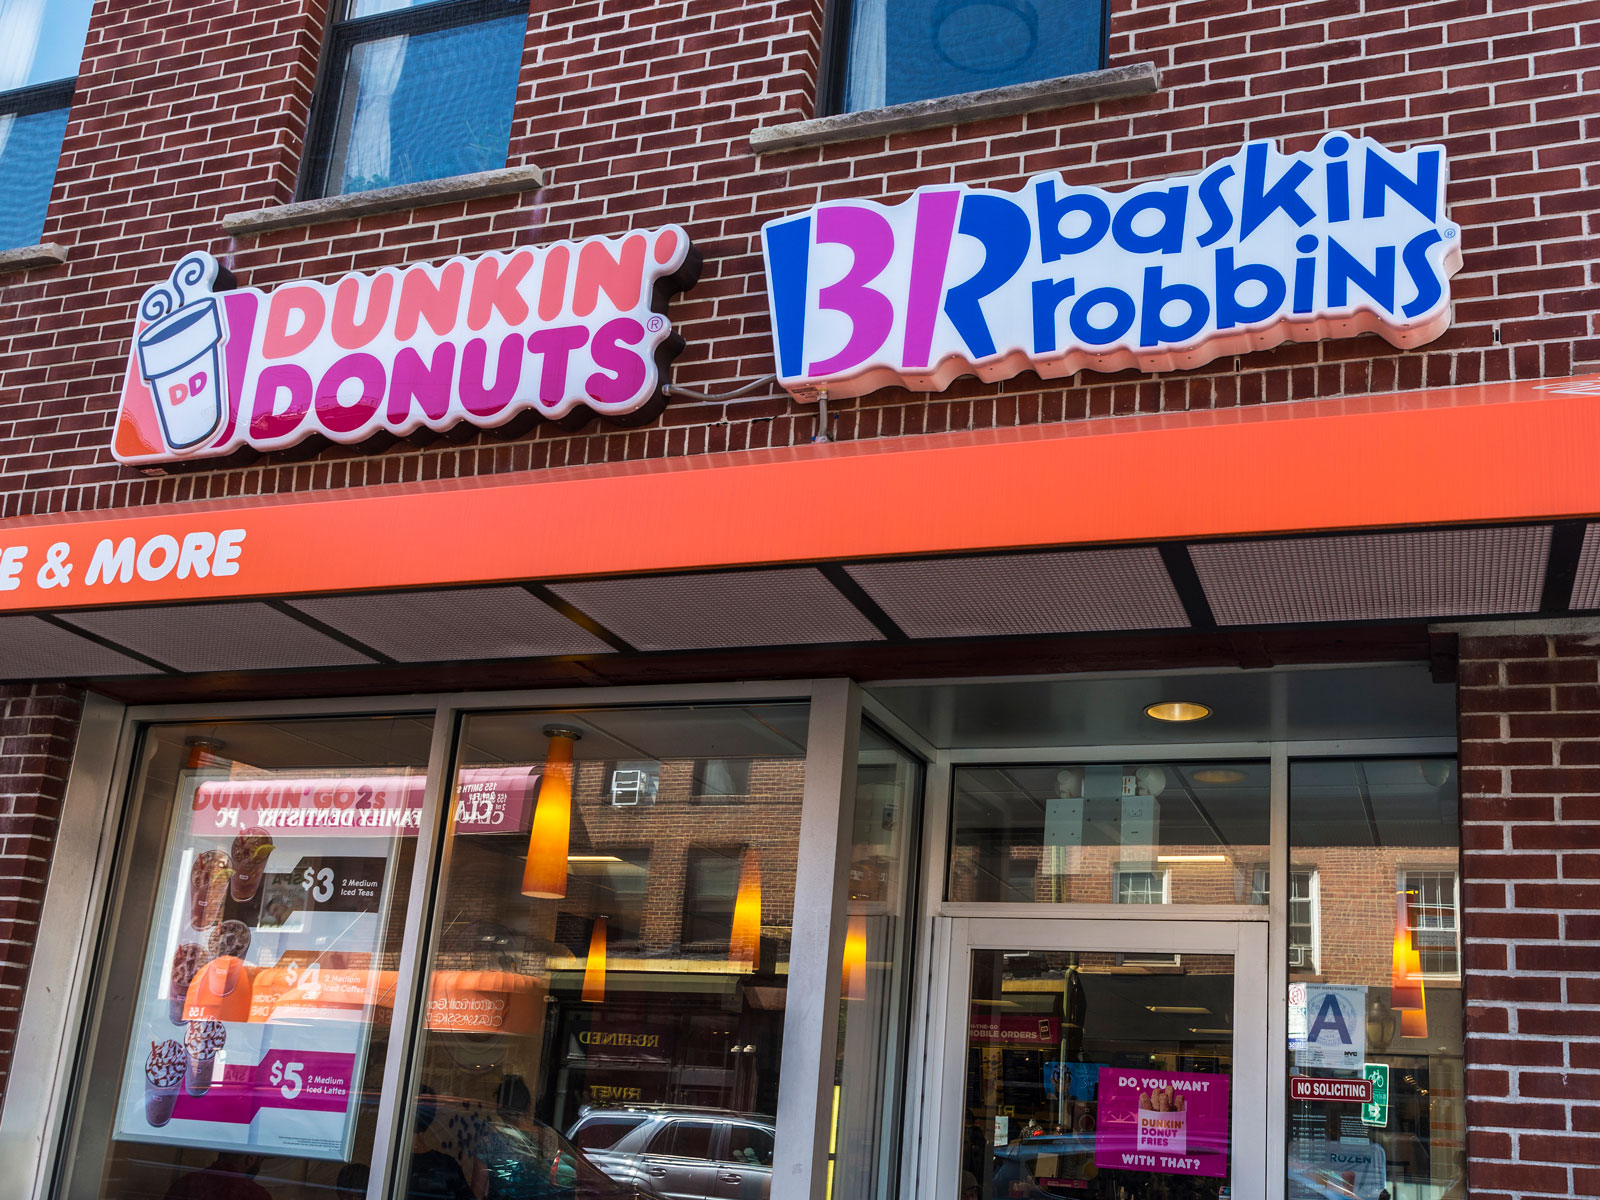 Affogatos (Finally) Arrive at Dunkin' and Baskin Robbins Combo Stores